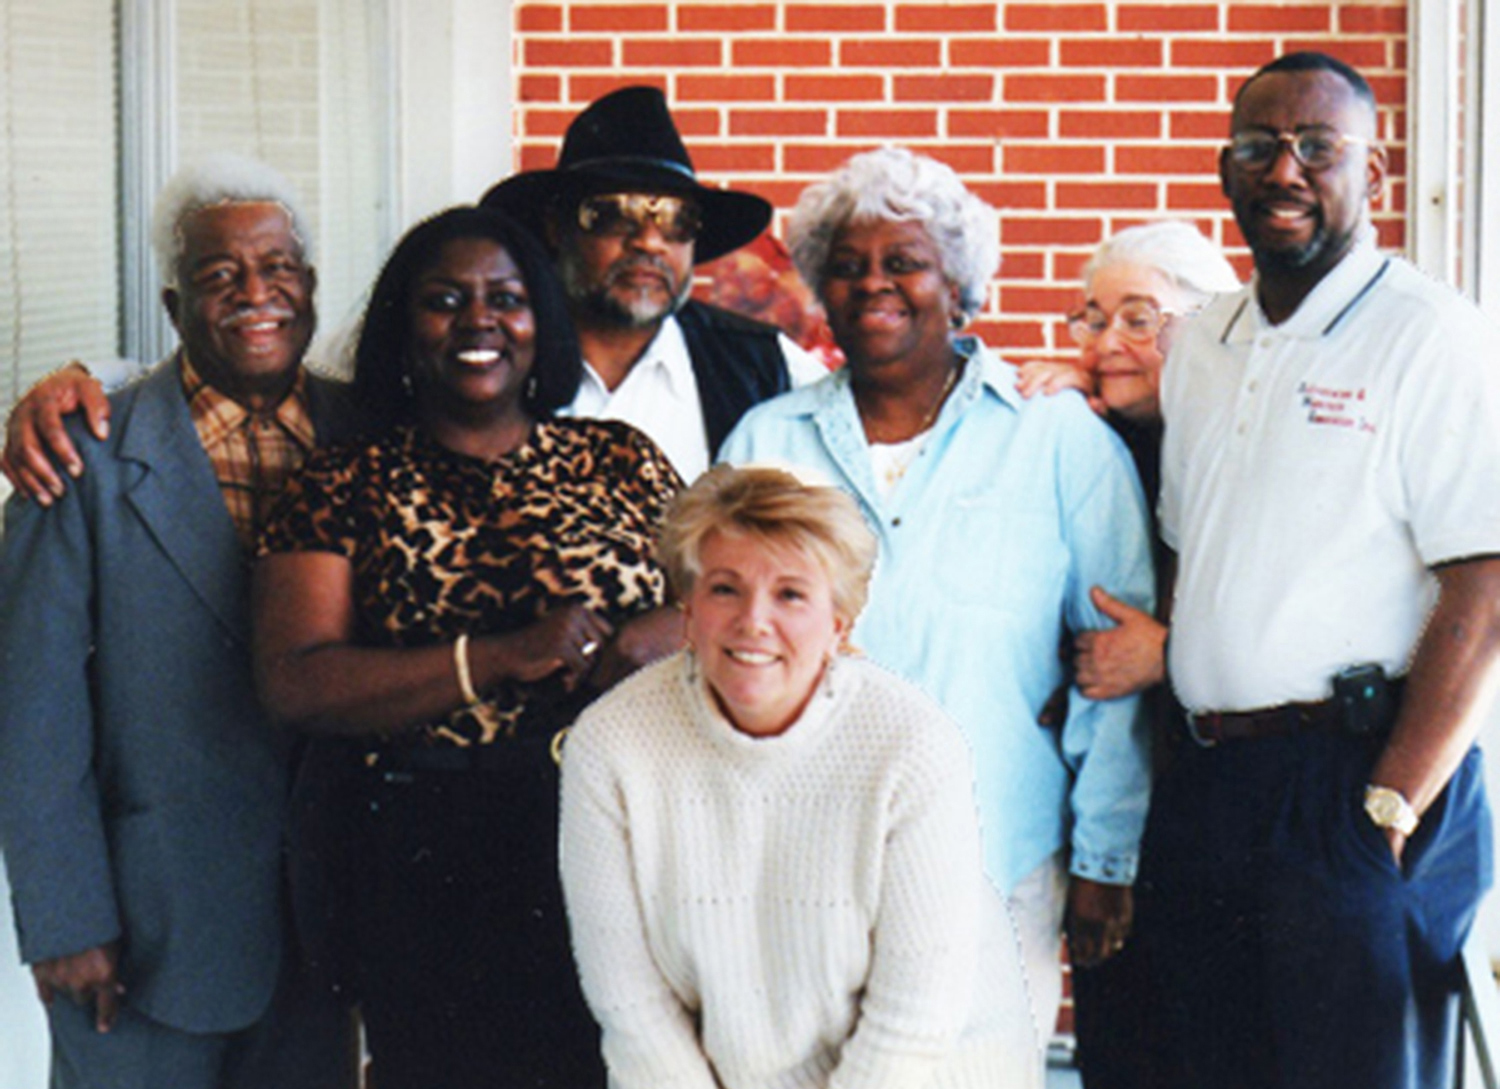 Nellie Mae Rowe family members Joe Brown, Cathi Bates Perry & Roberta Bates with Thunderbolt Patterson, Marianne Lambert, Judith and Thunderbolt's assistant